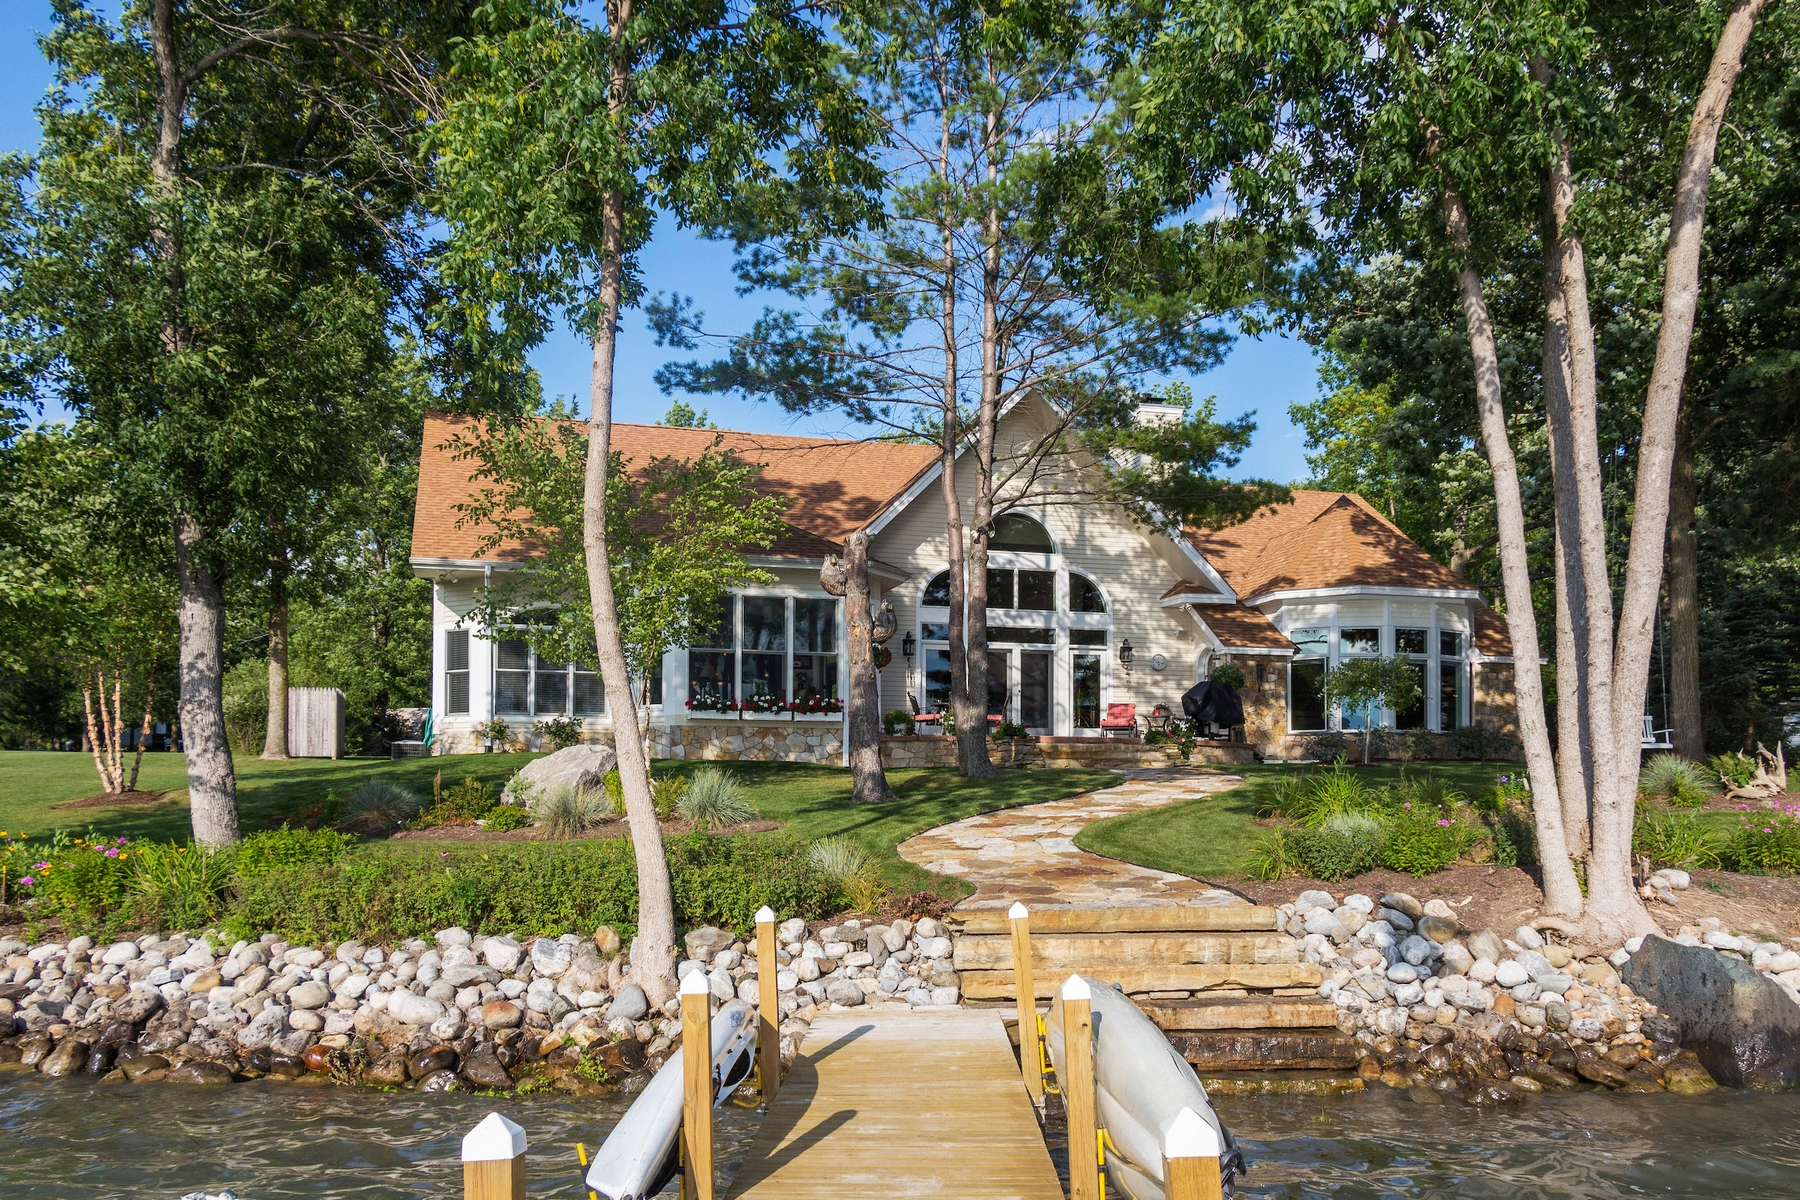 Casa Unifamiliar por un Venta en Custom Waterfront Home on Lake George 212 Black Point Road Ticonderoga, Nueva York 12883 Estados UnidosEn/Alrededor: Lake George